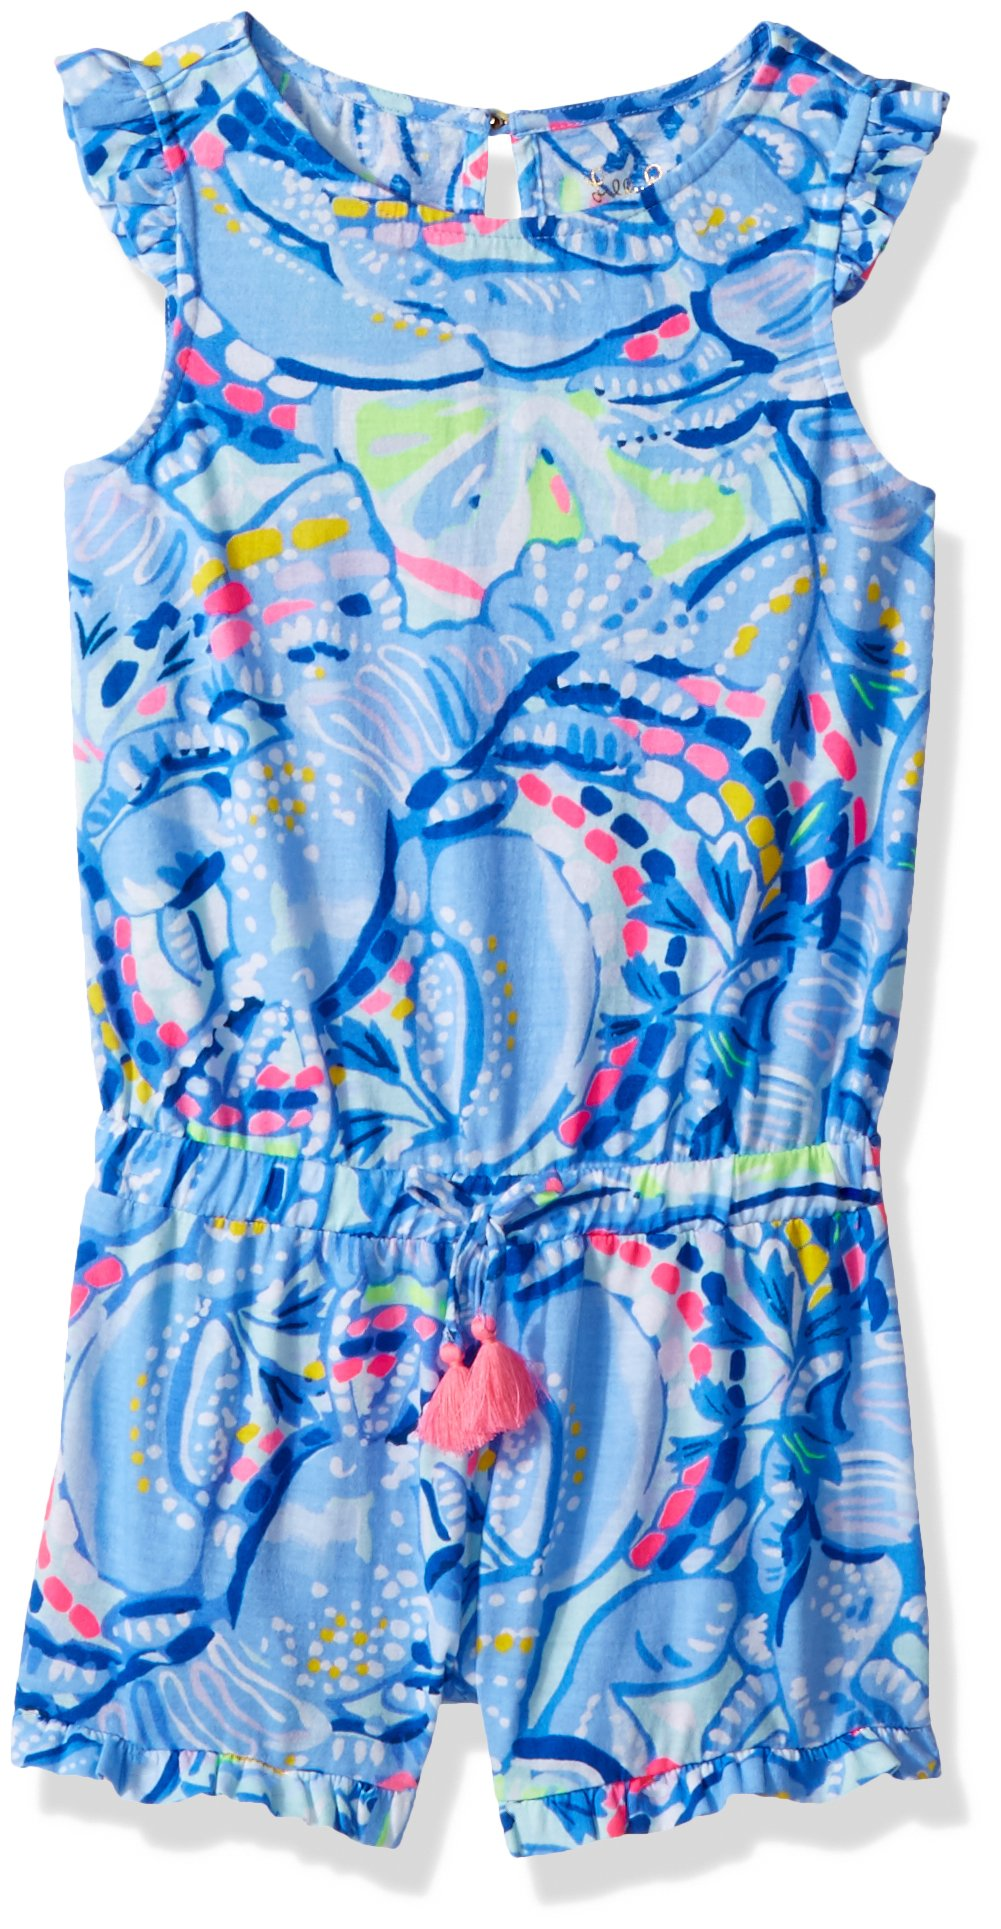 Lilly Pulitzer Girls' Little Azel Romper, Blue peri Pinch, S